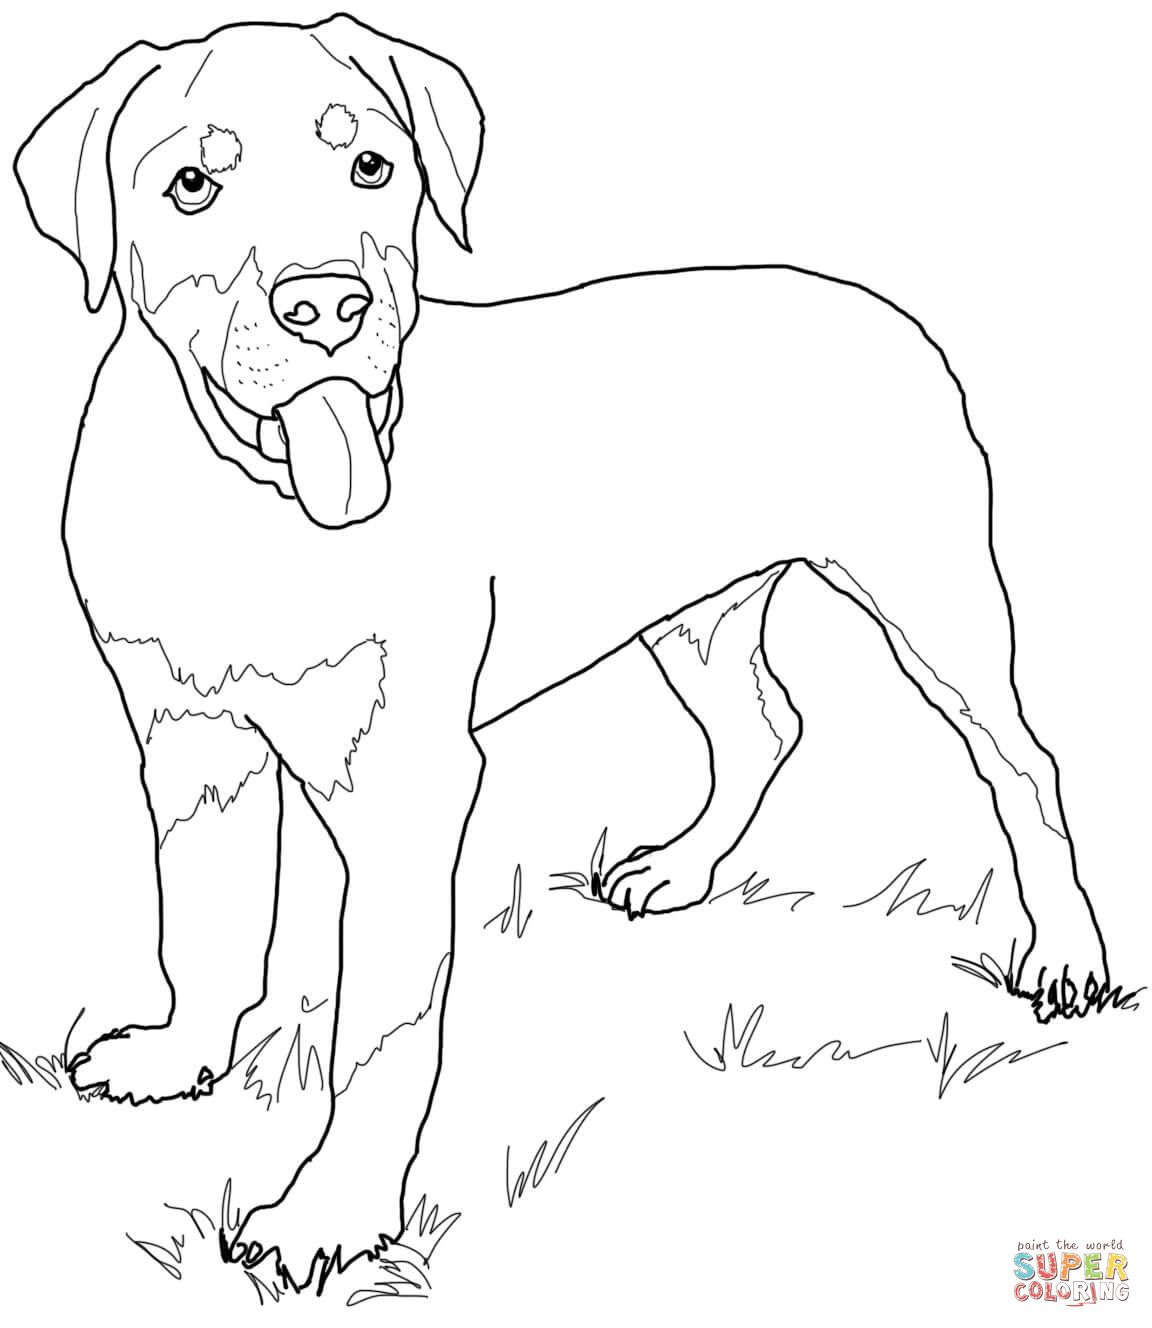 Rottweiler Puppy Super Coloring Puppy Coloring Pages Puppy